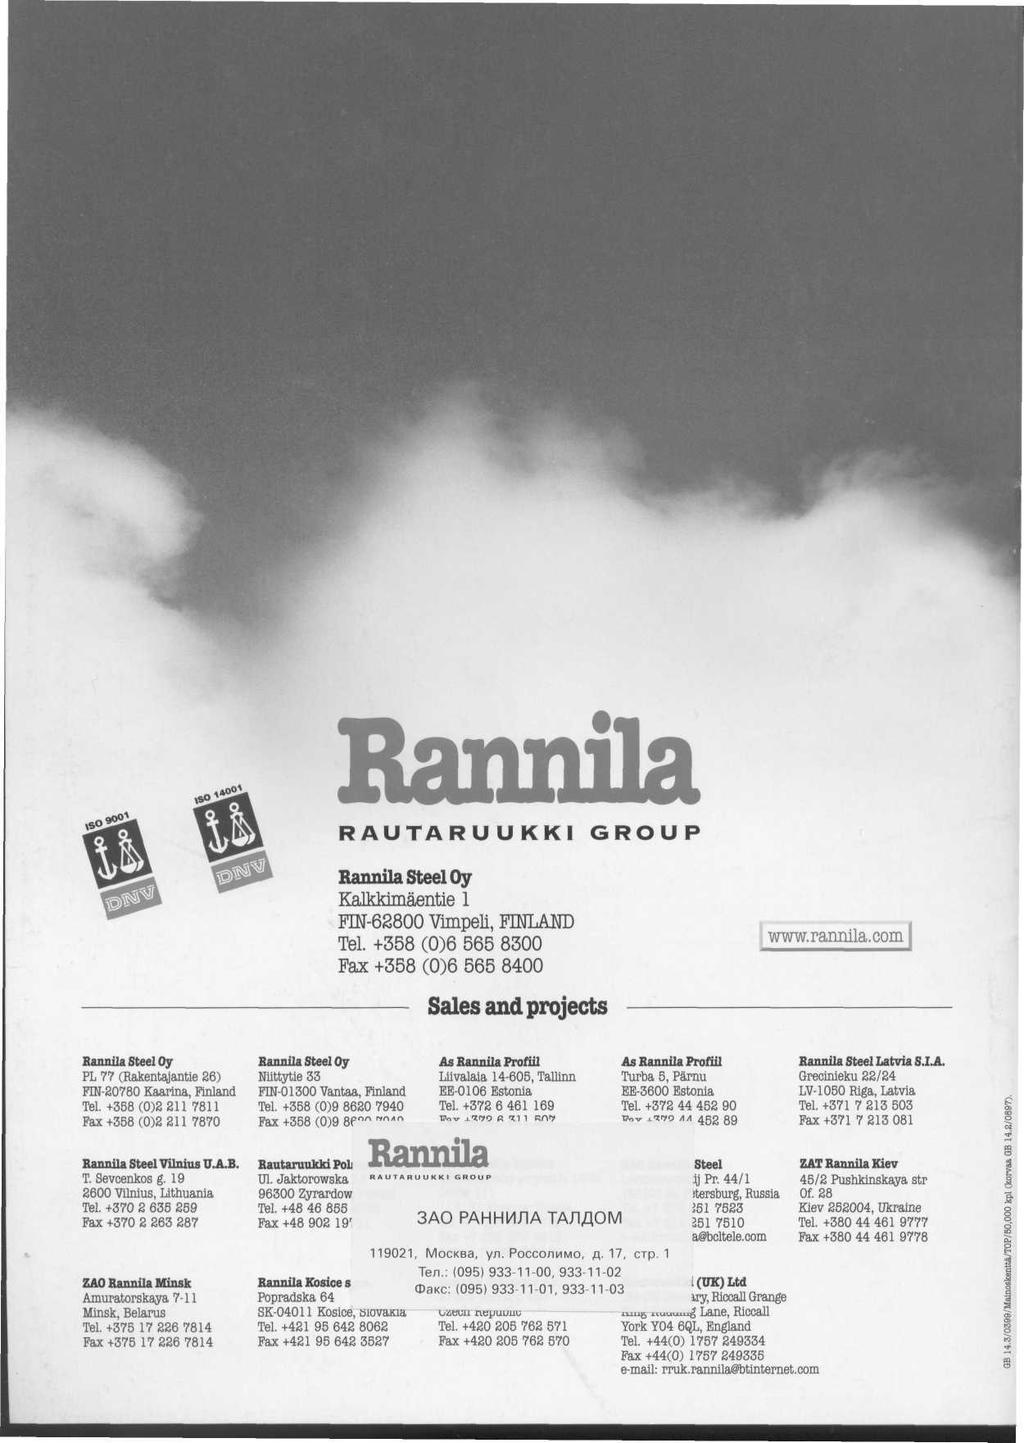 Raimila RAUTARUUKKI GROUP Rannila Steel Oy Kalkklmaentie 1 РШ-62800 VimpeU, ПЖШГО Tel. +358 (0)6 565 8300 Fax +358 (0)6 565 8400 Sales and projects www.rannlla.